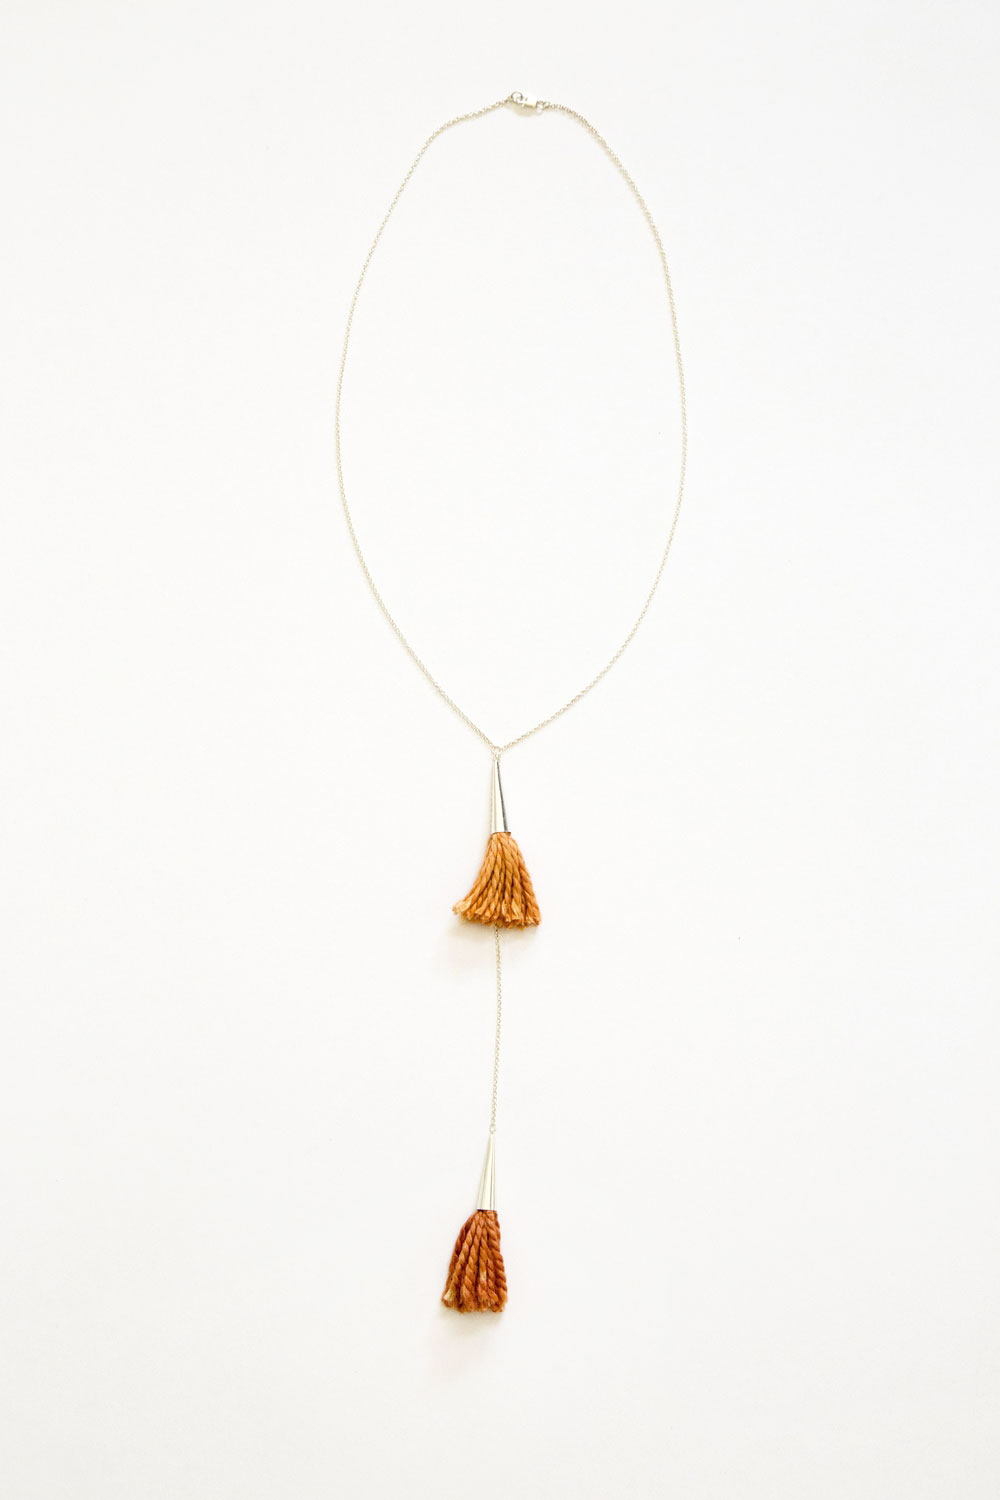 Ellen Mote Jewelry | Silver chain with handdyed tassels